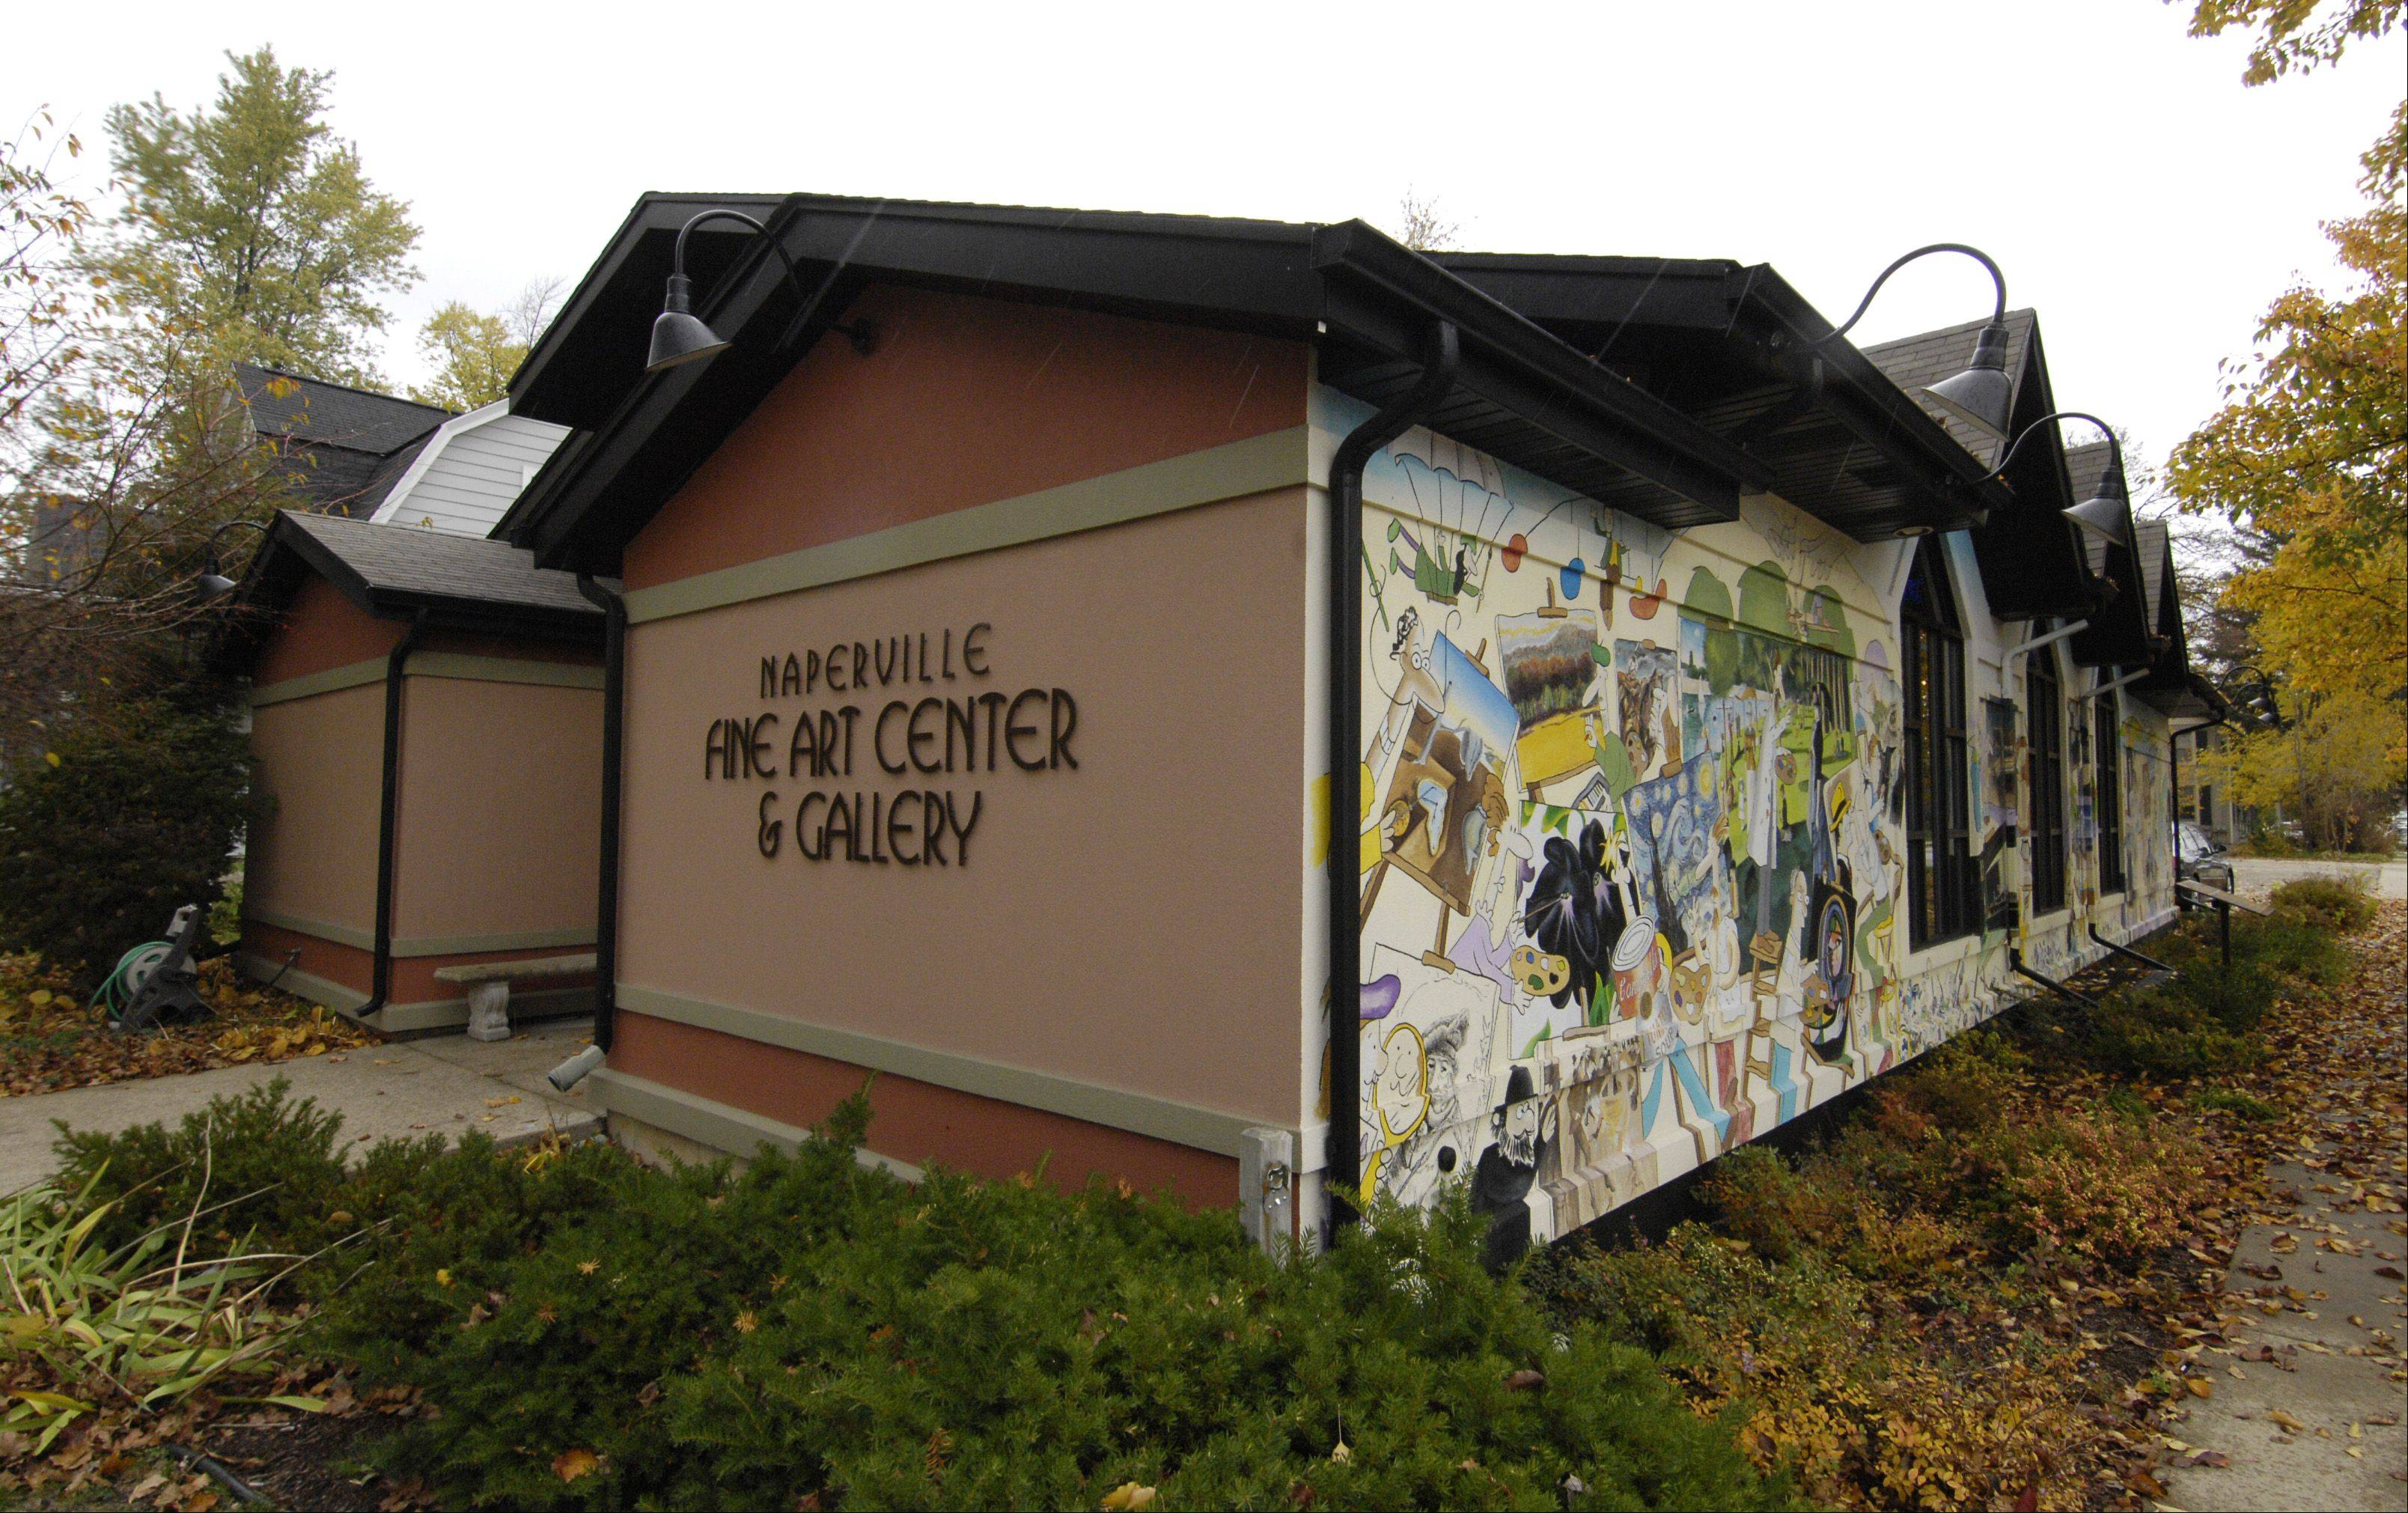 The Naperville Art League's Fine Art Center and Gallery features a mural that connects the art league to master artists.